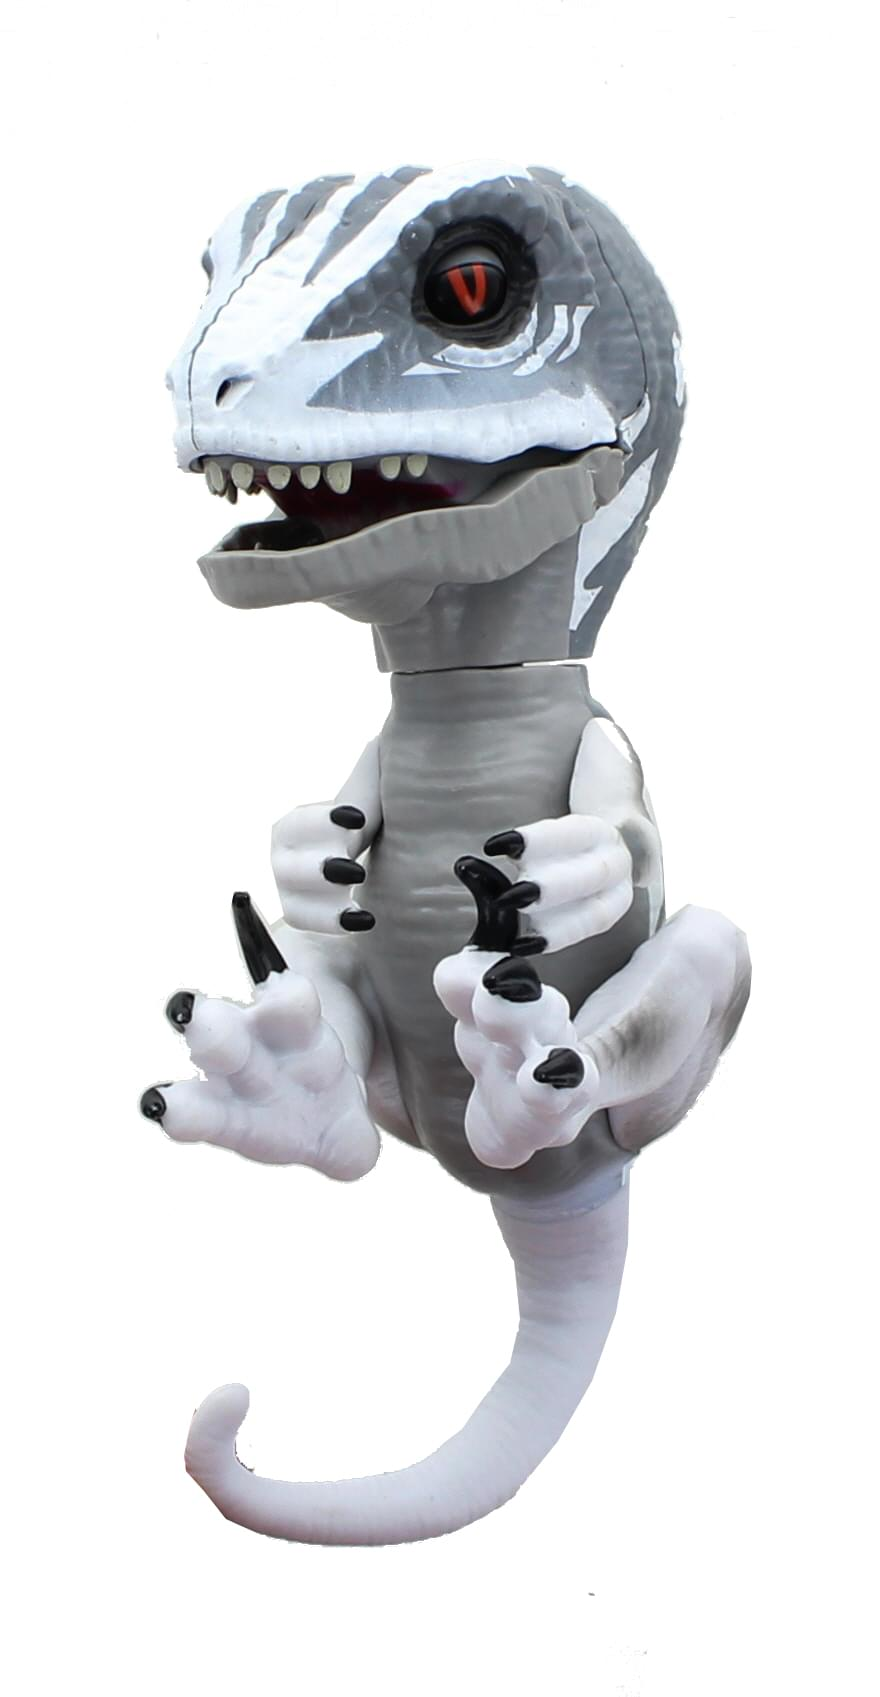 Fingerlings Untamed Raptor Interactive Collectible Dinosaur - Gray Ghost